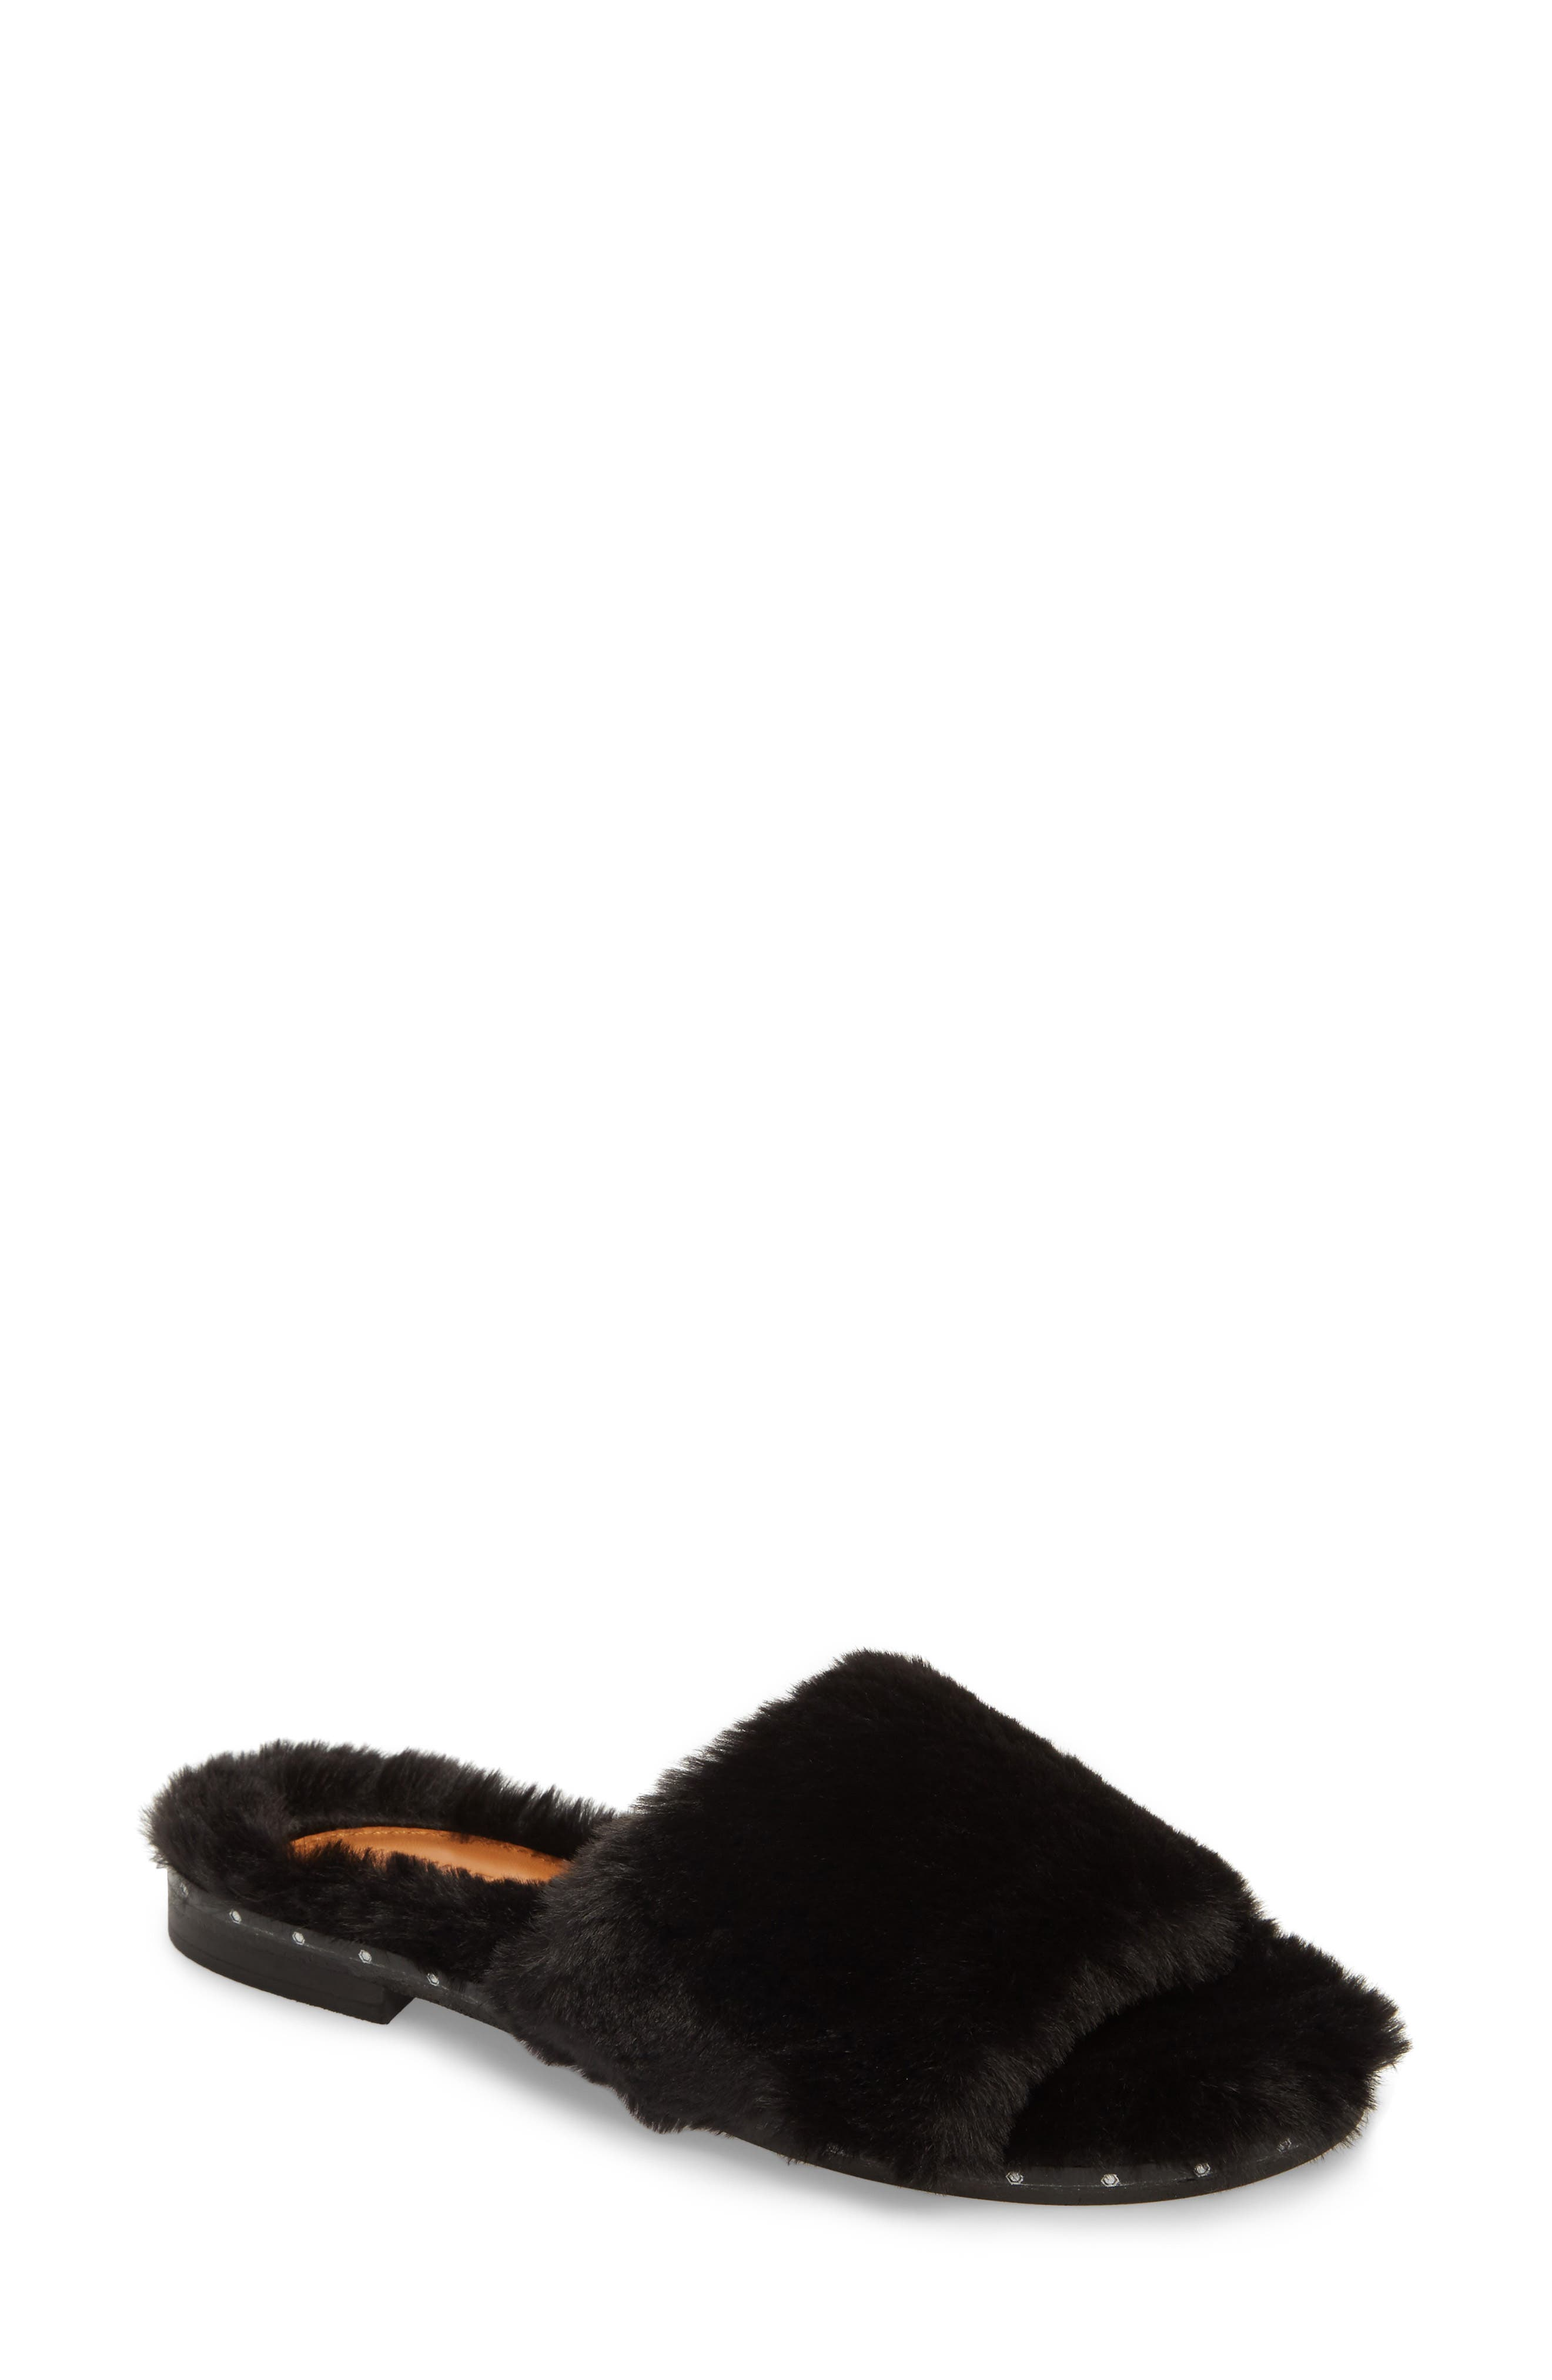 Peggy Faux Fur Slide Sandal,                             Main thumbnail 1, color,                             Black Faux Fur